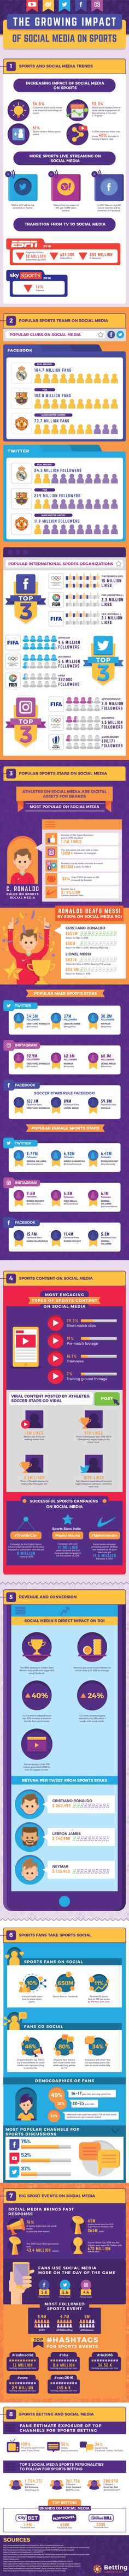 The Growing Impact of Social Media On Sports (Infographics) | Brief News